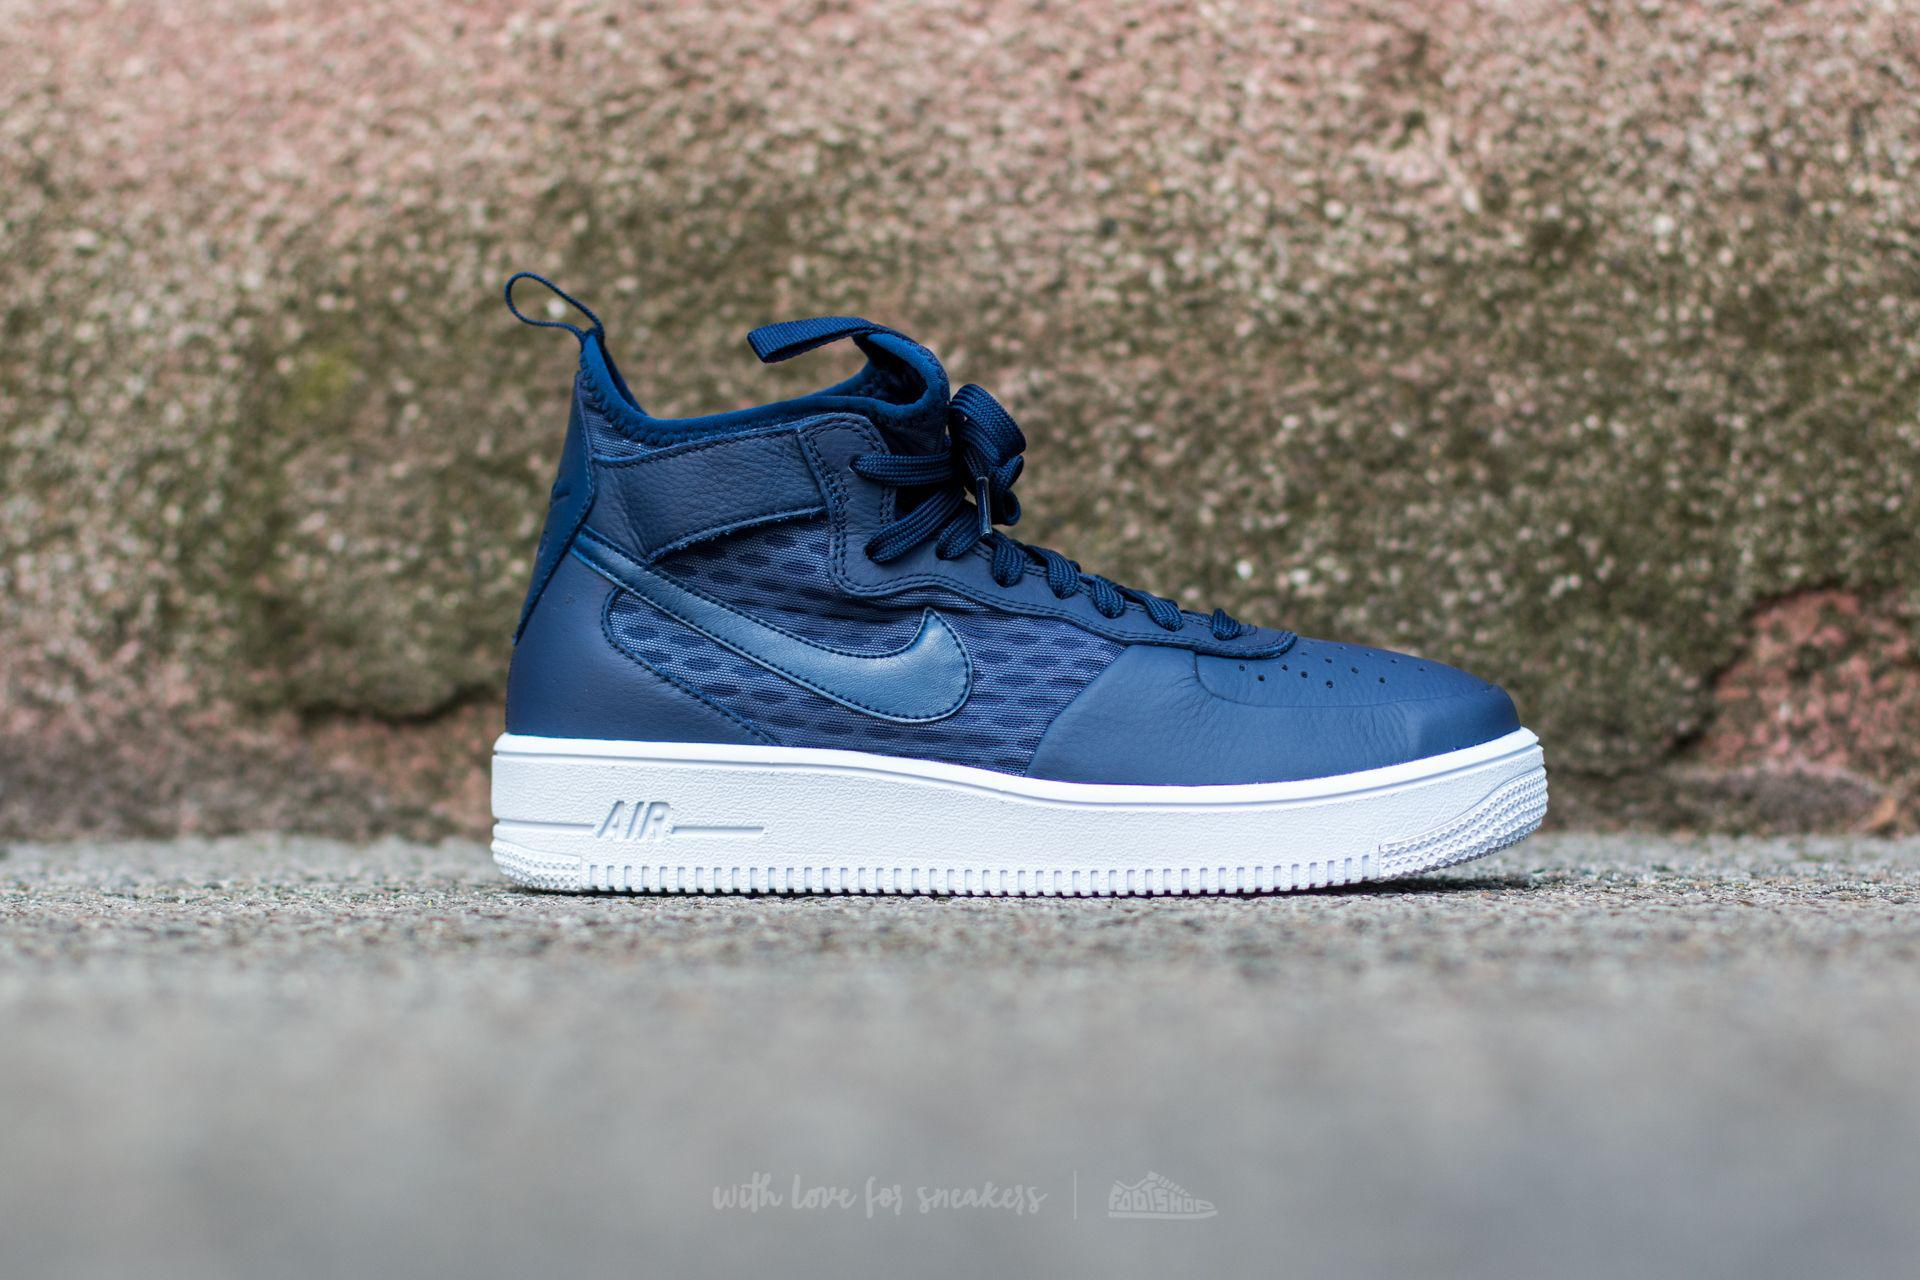 8ad1fa5432e6 hot nike wmns air force 1 ultraforce mid vachetta tan sneaker women 05d83  cba88; norway gallery. previously sold at footshop mens nike air force  923d3 5ba6c